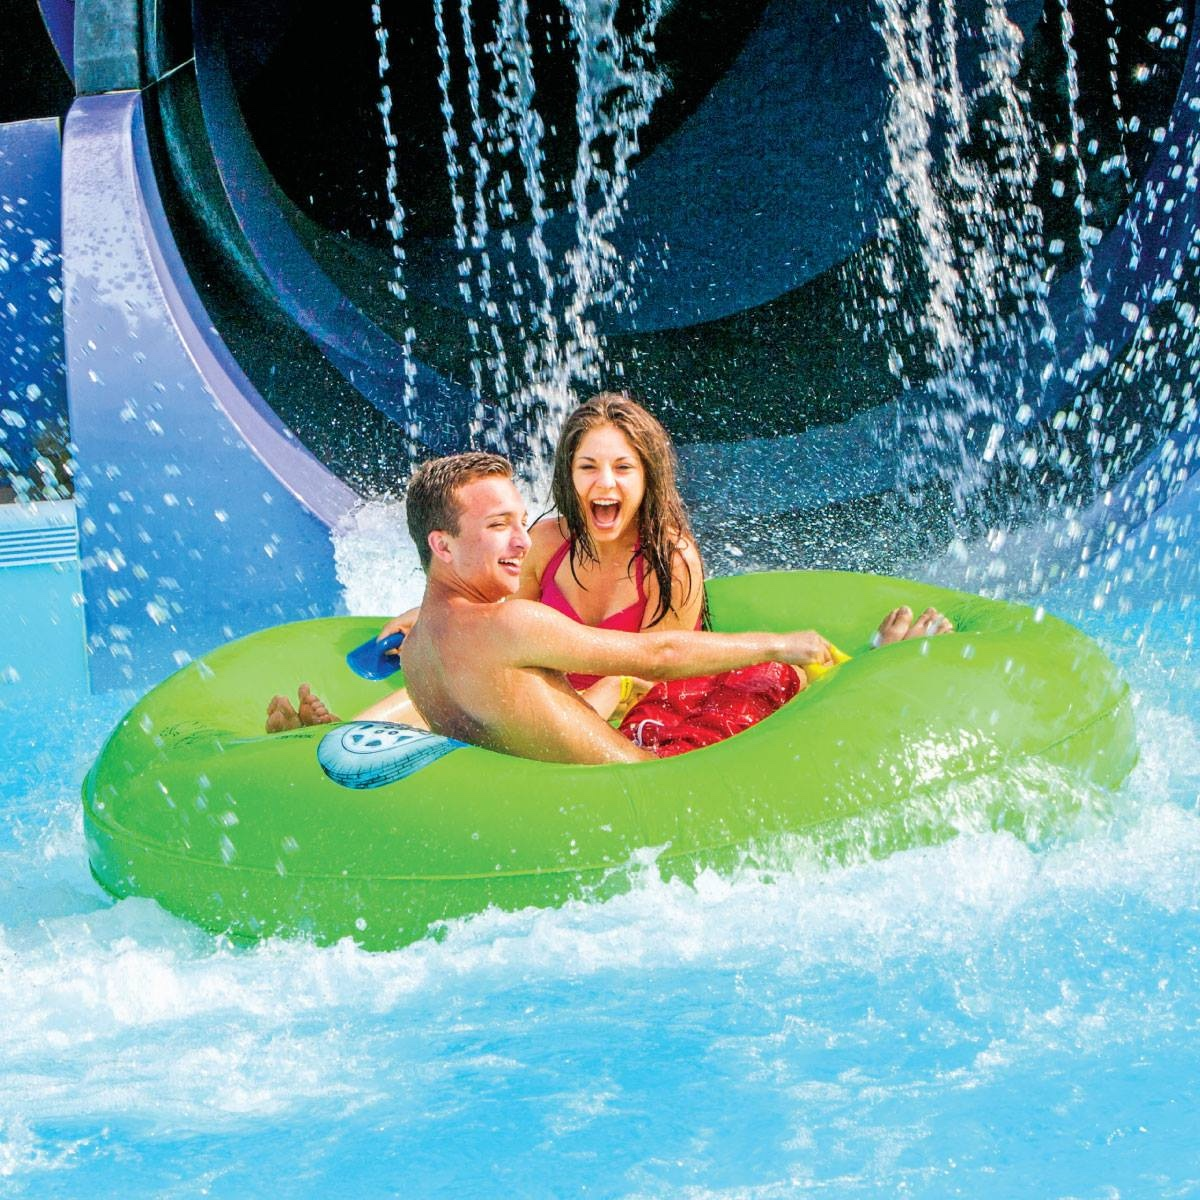 Visit this water park by renting a charter bus.